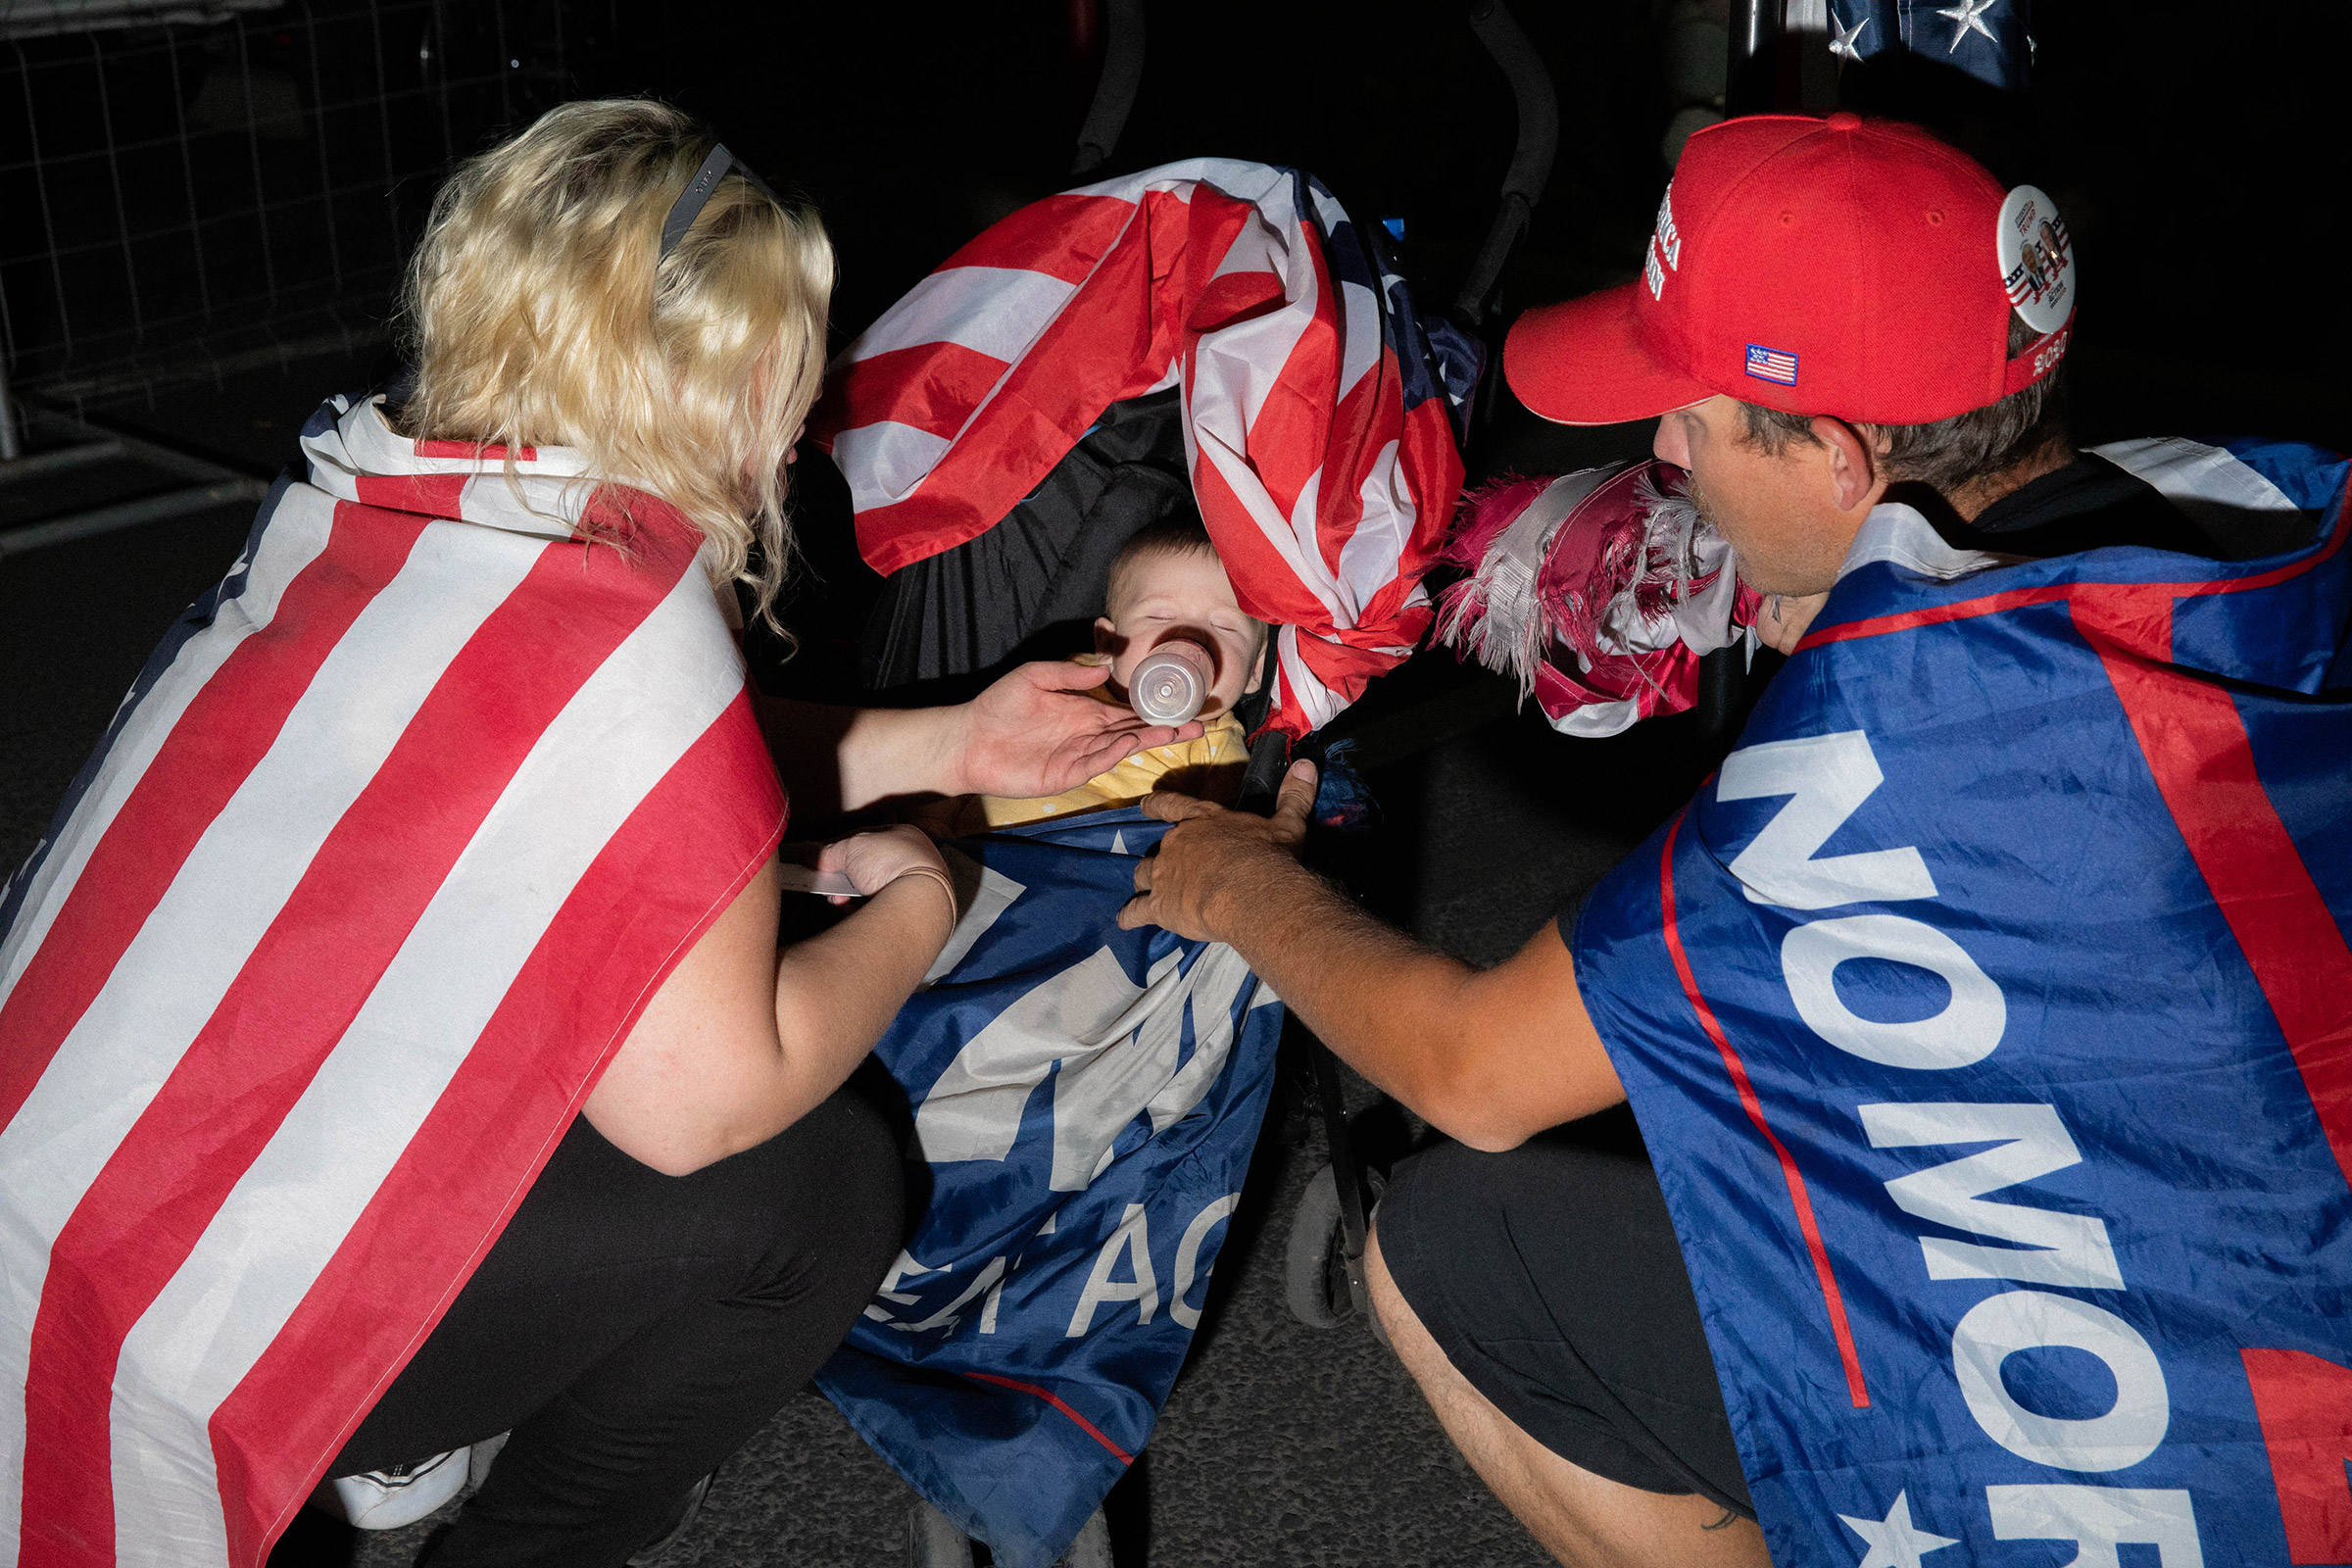 Andrew Germana and Jenna Colley feed their baby at the Maricopa County Elections office in Phoenix, on Nov. 5